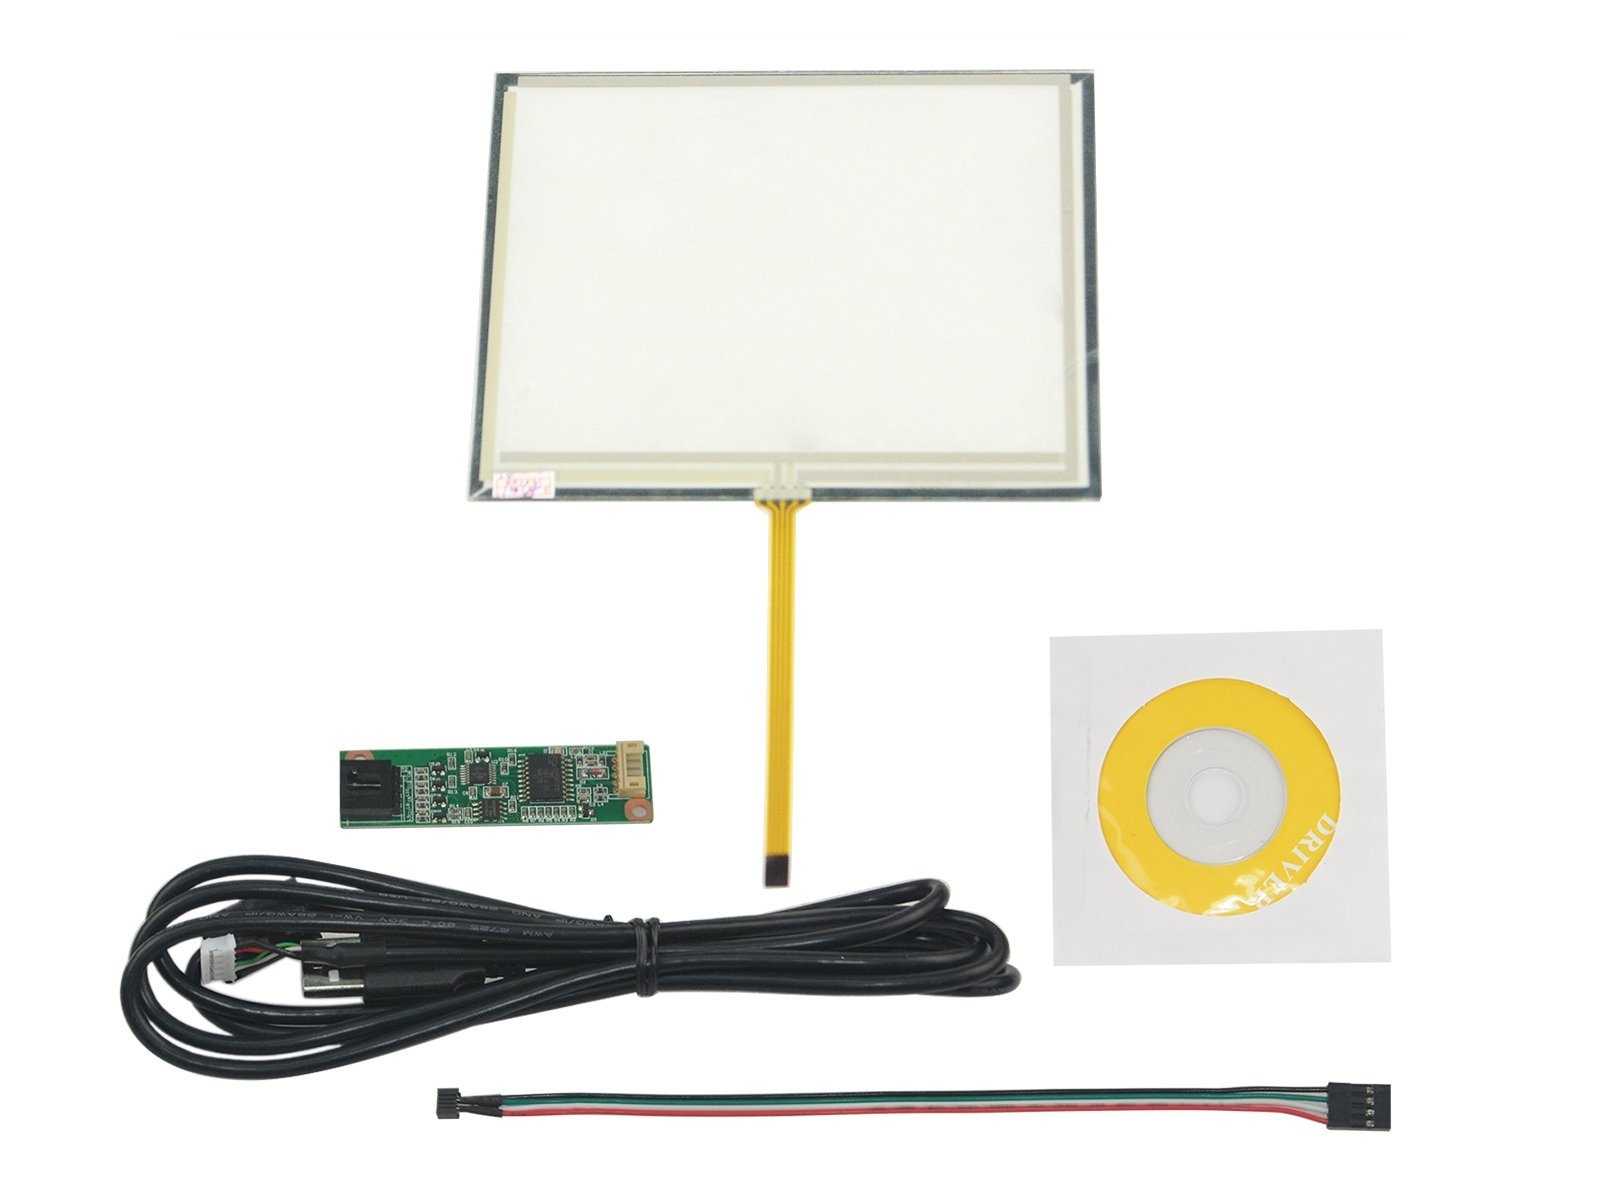 NJYTouch 5.6inch 4 Wire Resistive Touch Panel Digitizer 126x100mm For 5.6 inch AT056TN52 AT056TN53 LCD Screen With 4 Wire USB Driver Controller Kit by NJYTouch (Image #1)